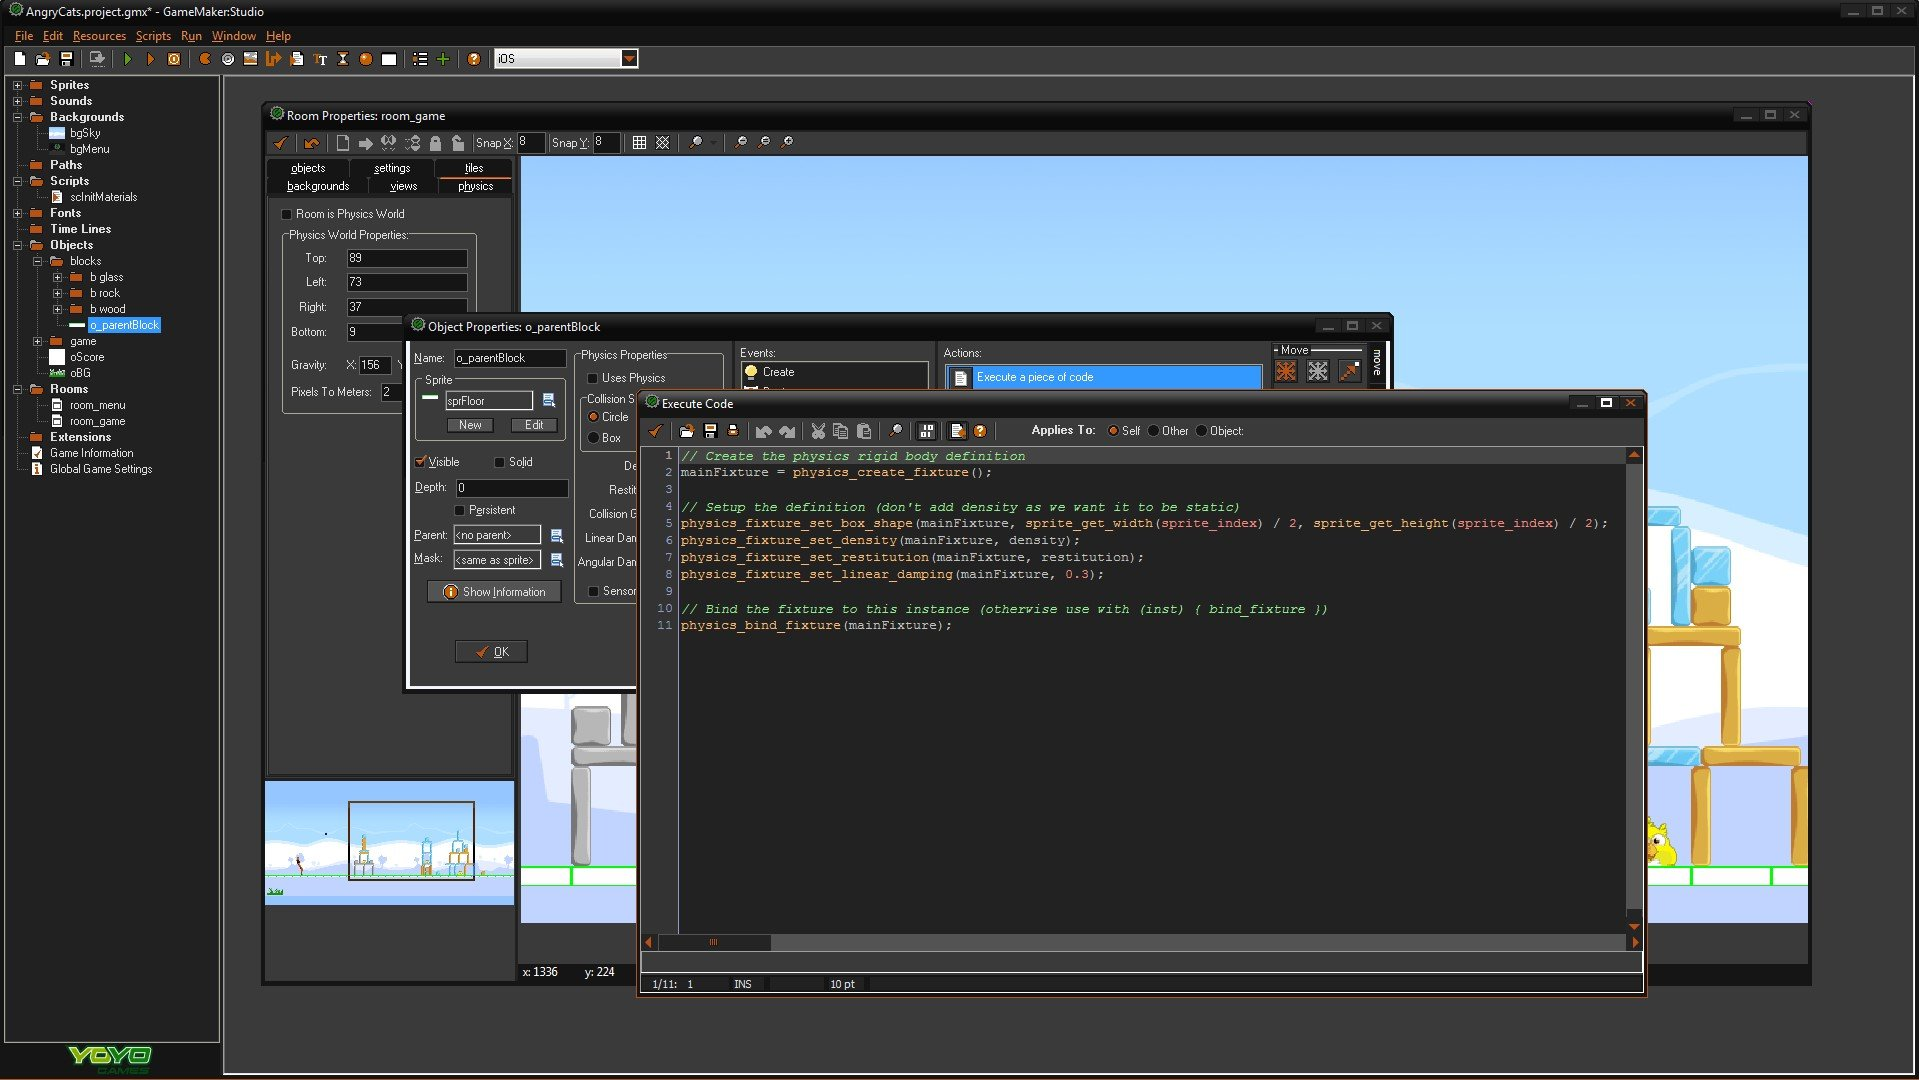 Game Maker Studio 2 Linux